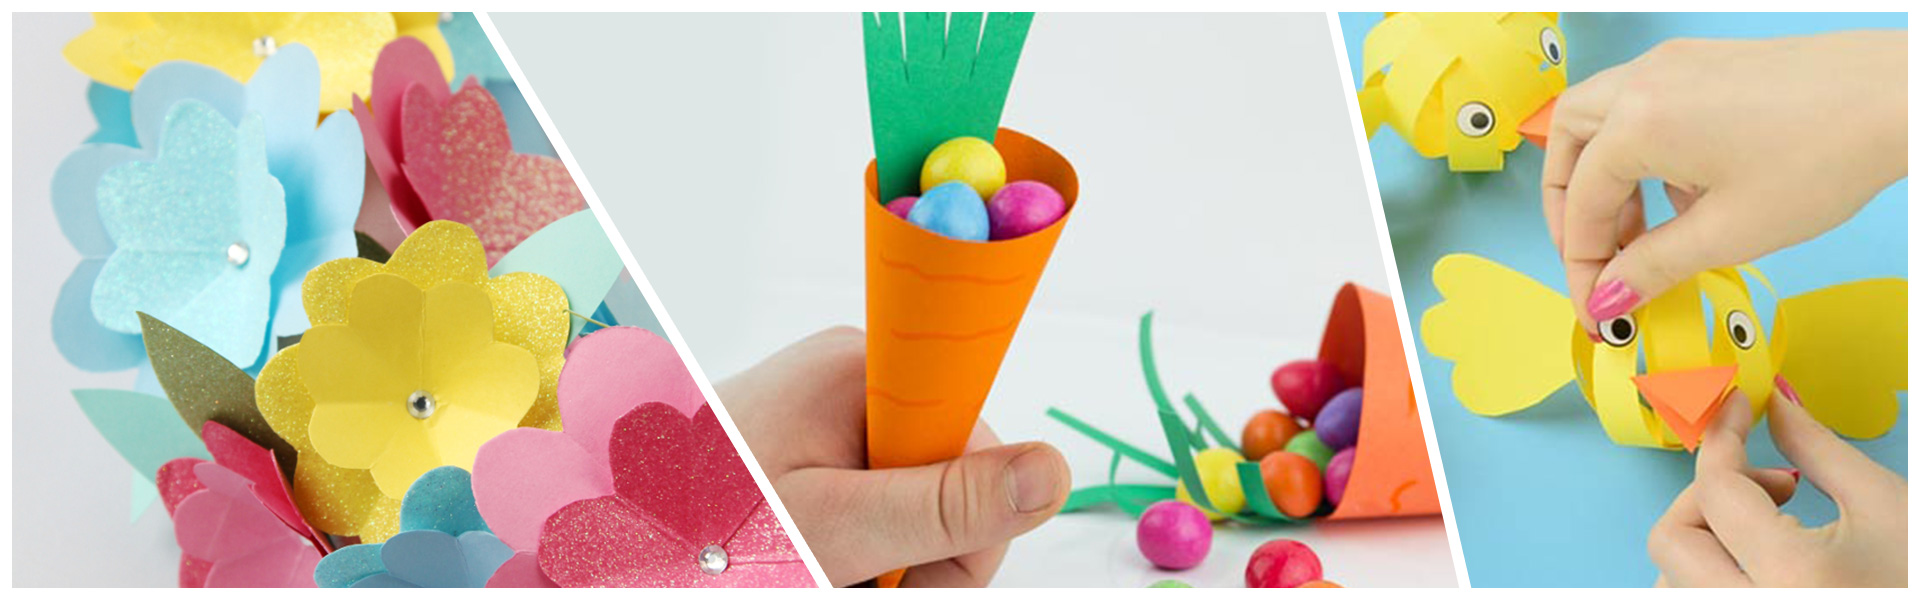 5 Easy Paper Crafts to Keep the Kids Busy over Easter